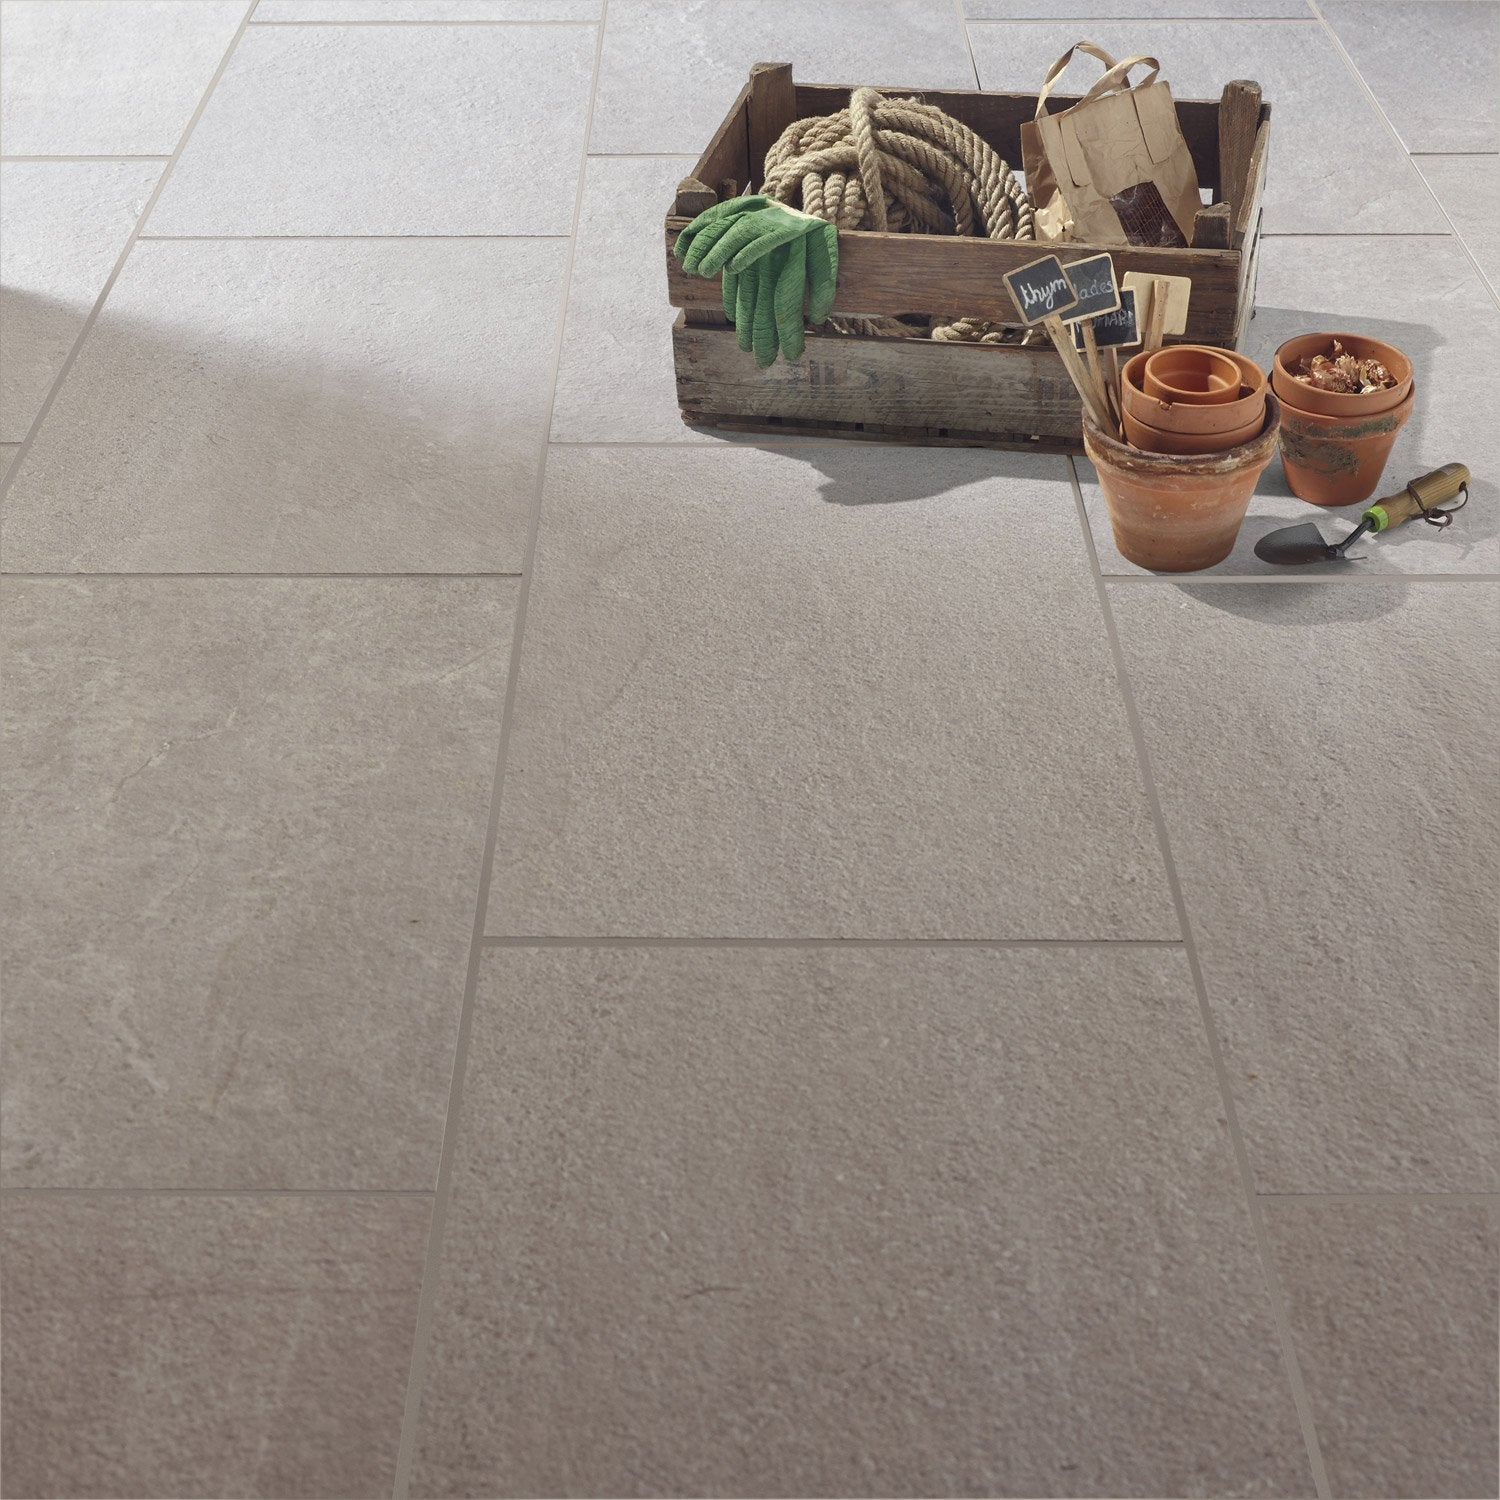 Carrelage sol sable effet pierre story x cm - Sable polymere leroy merlin ...